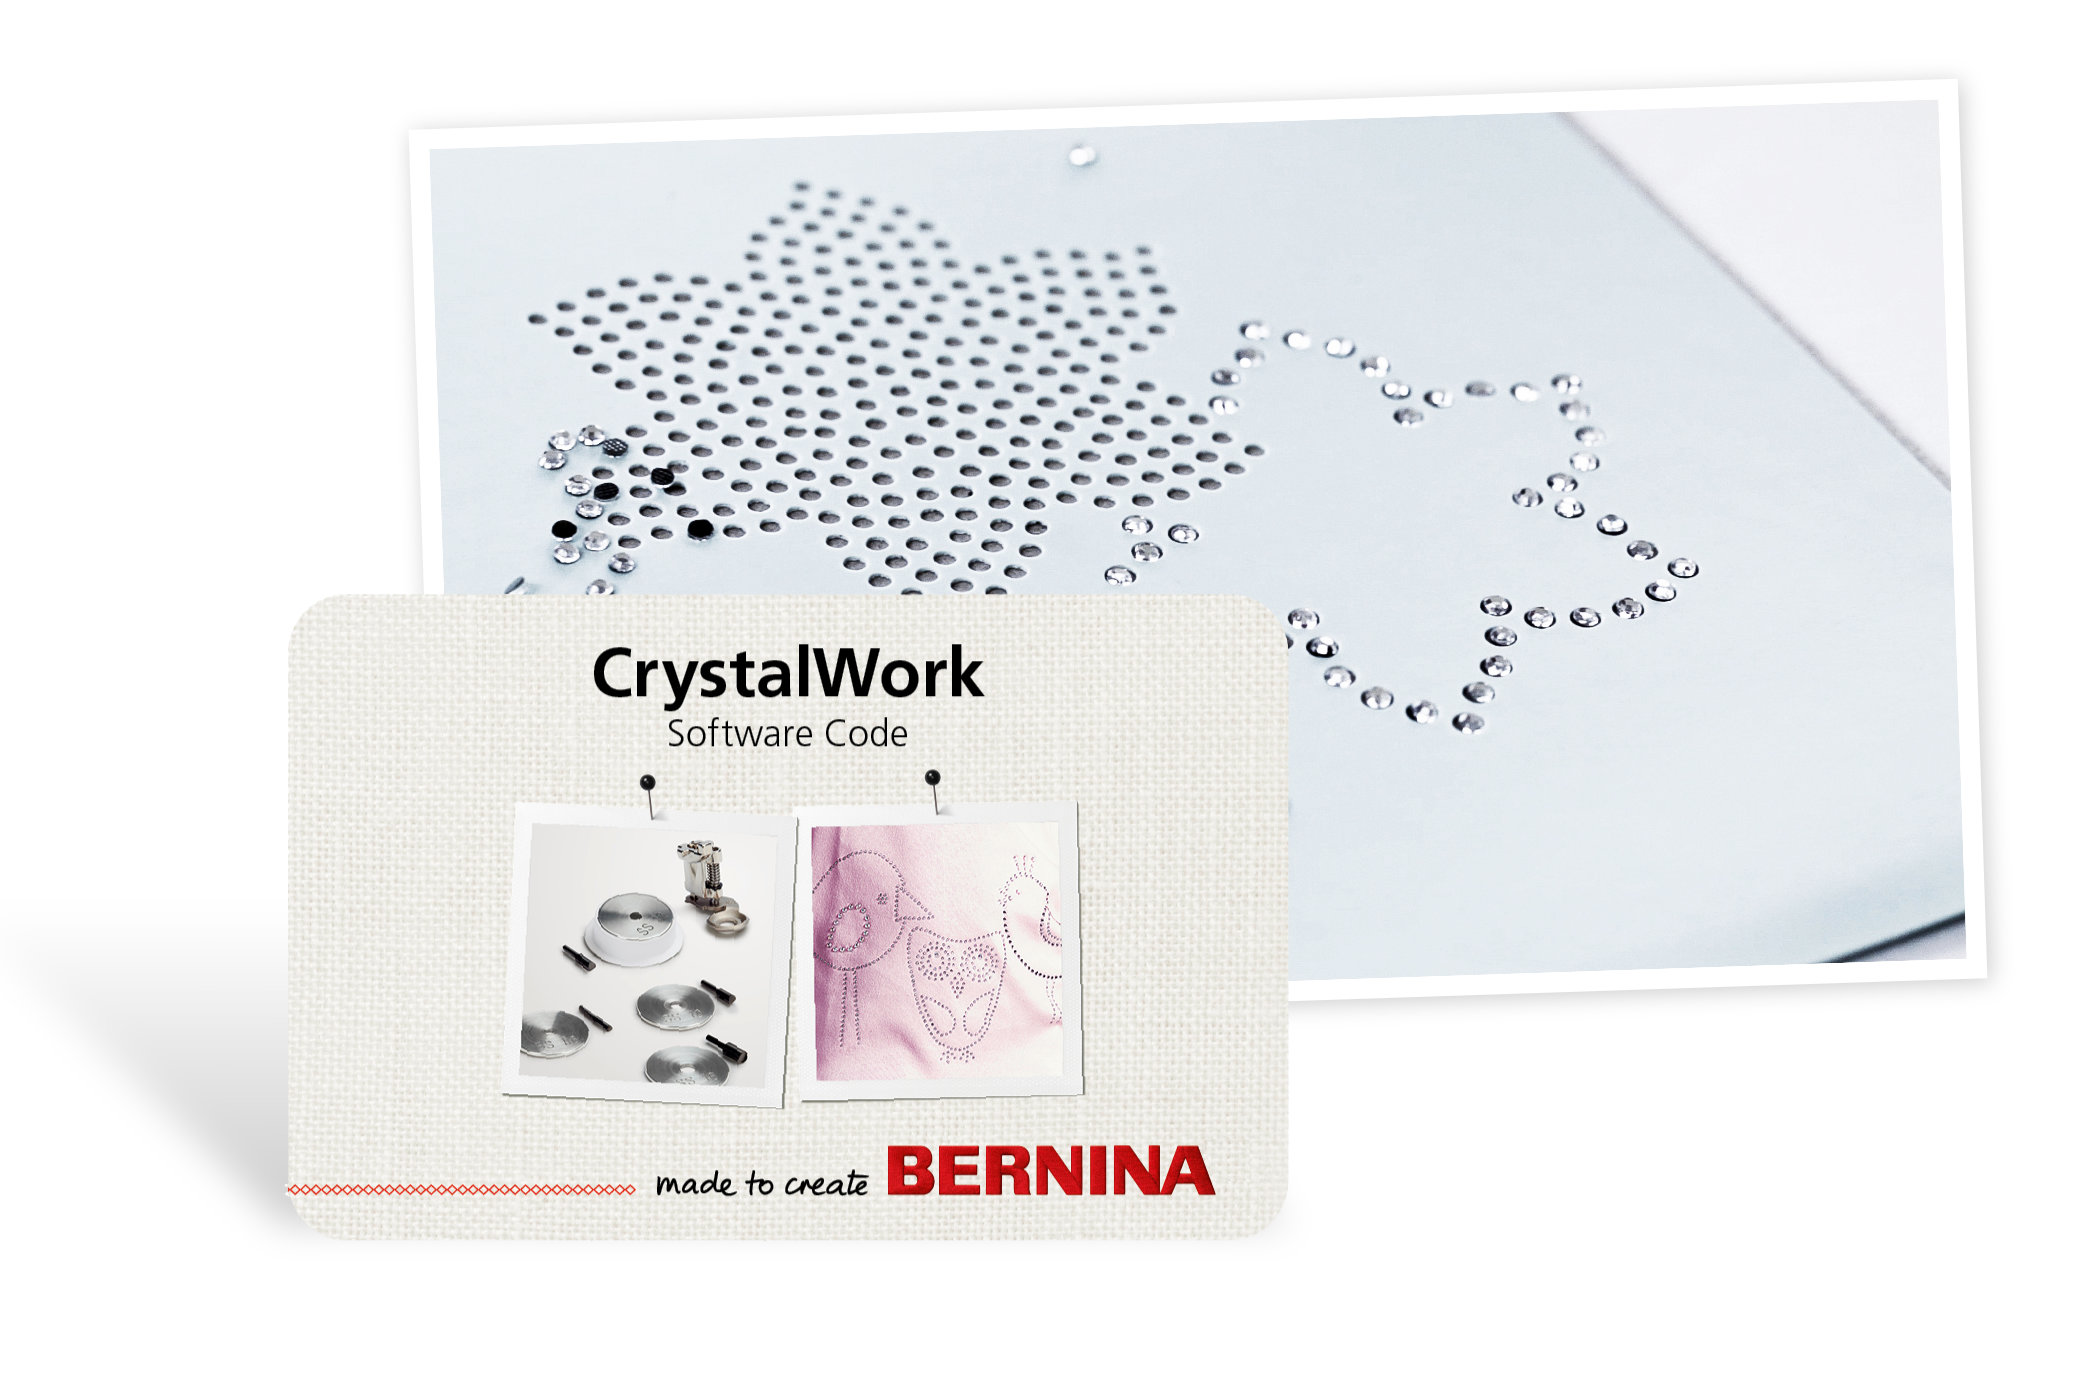 BERNINA CrystalWork Software